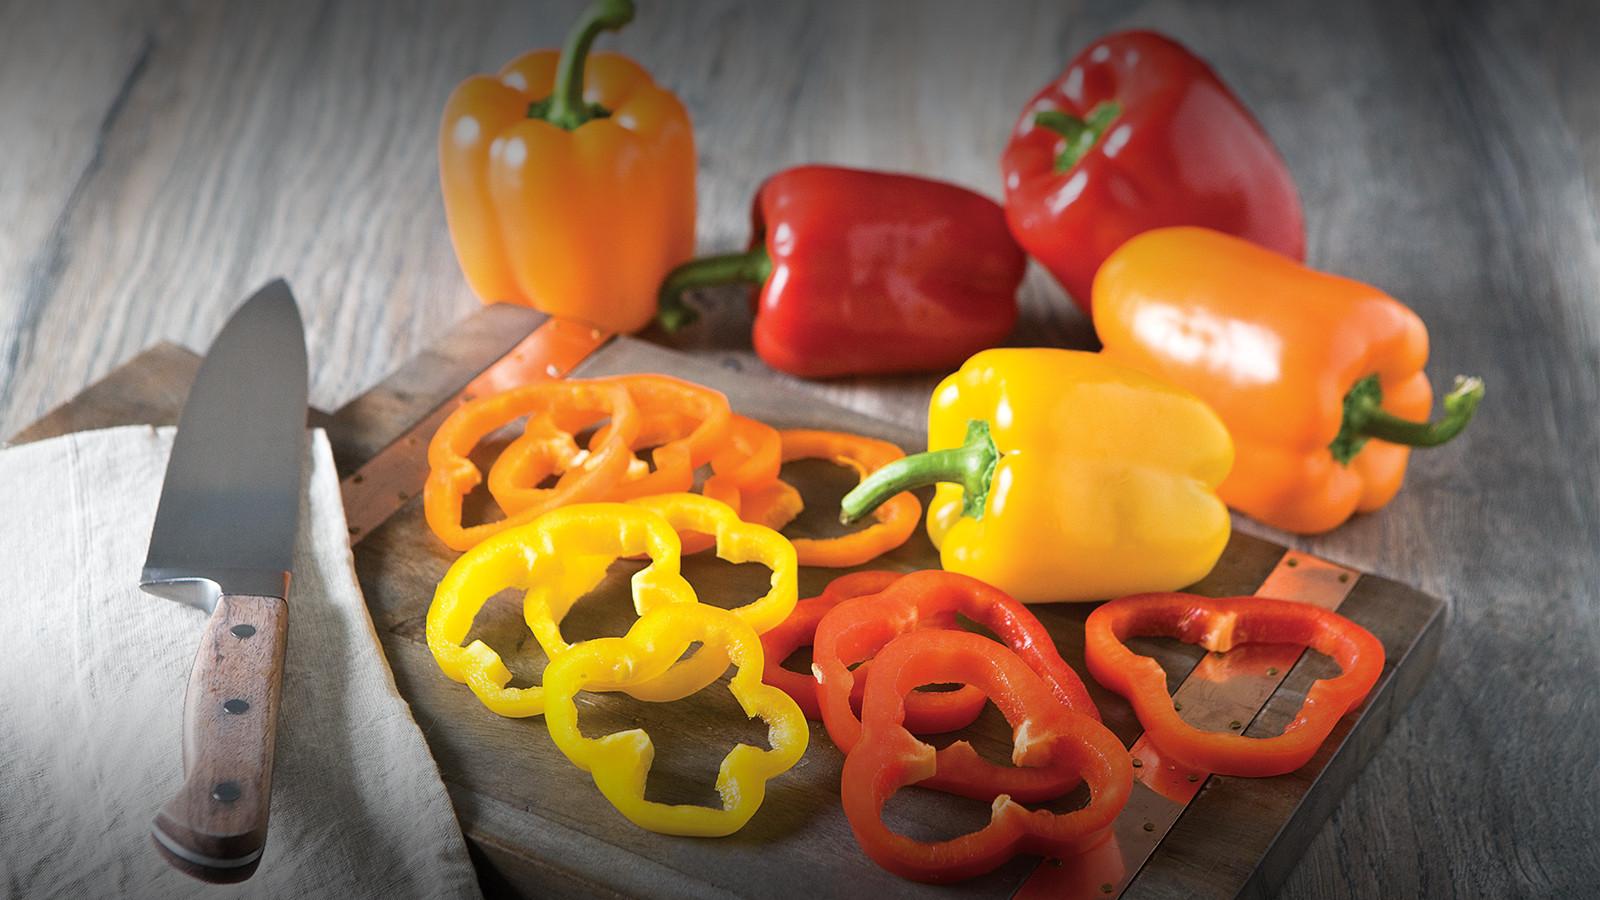 Orange, Red and Yellow Bell Peppers